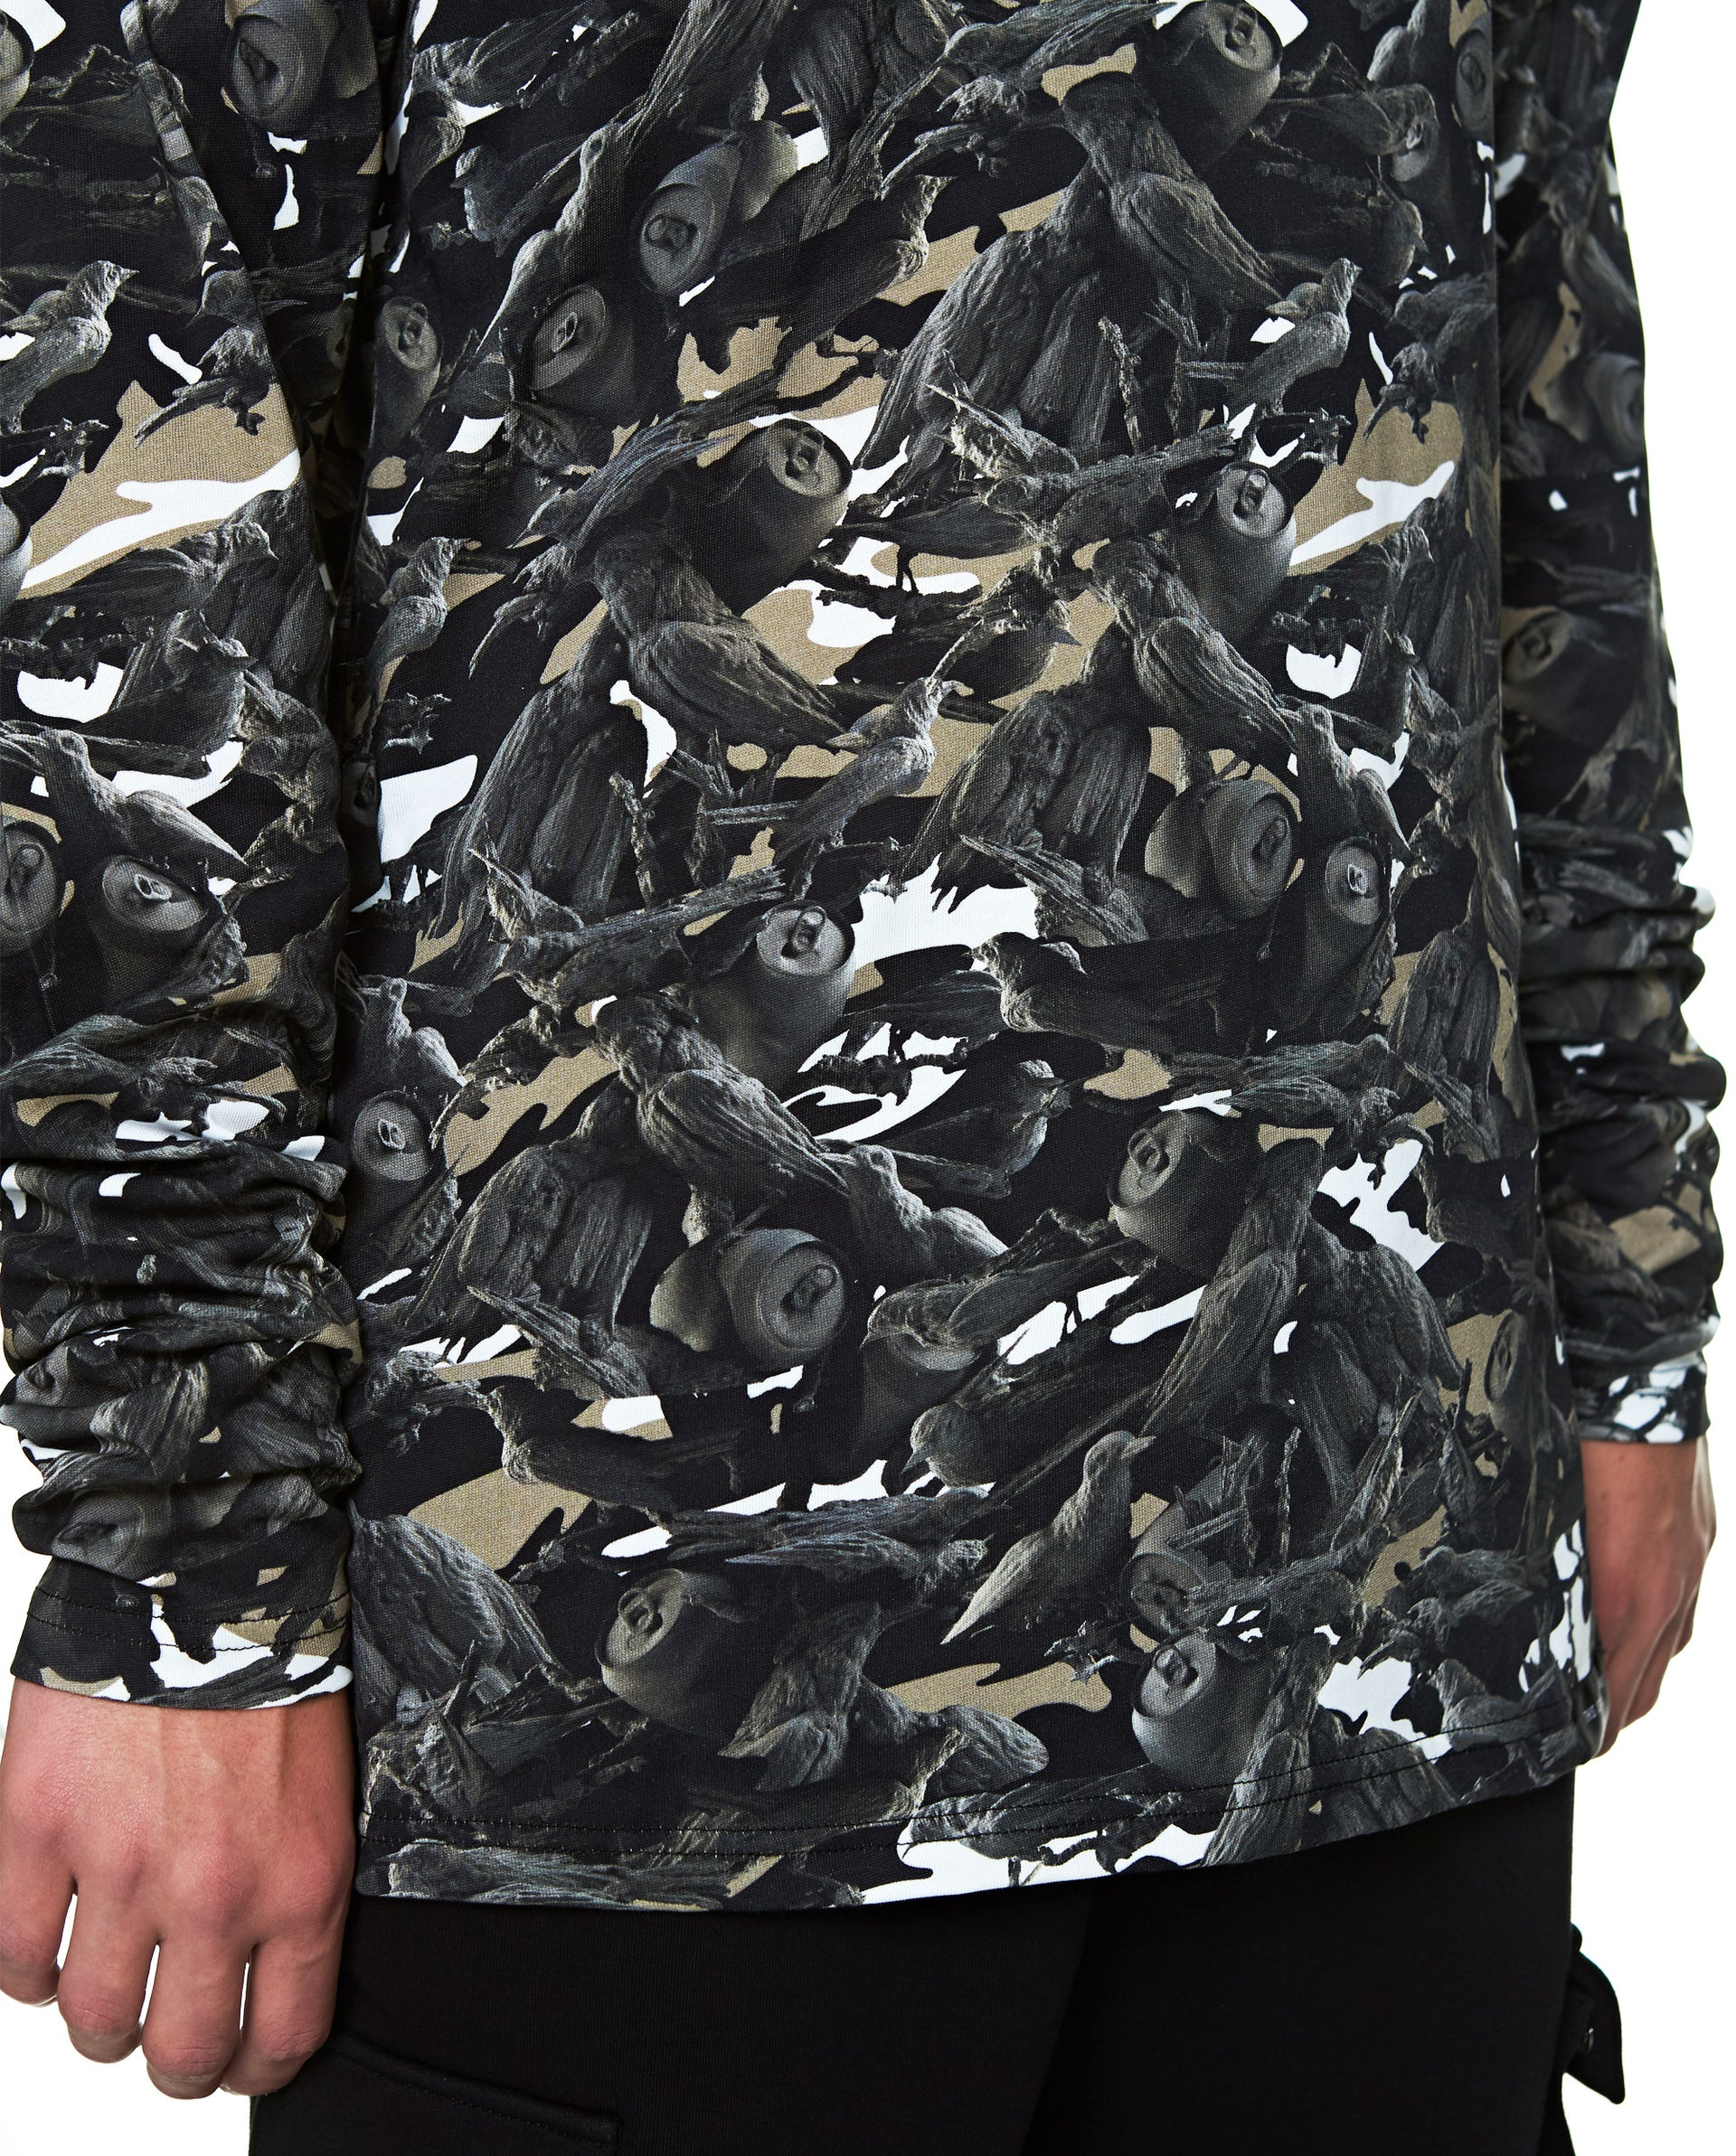 This Is Not Clothing - BIRDS OF PARADISE CAMO I